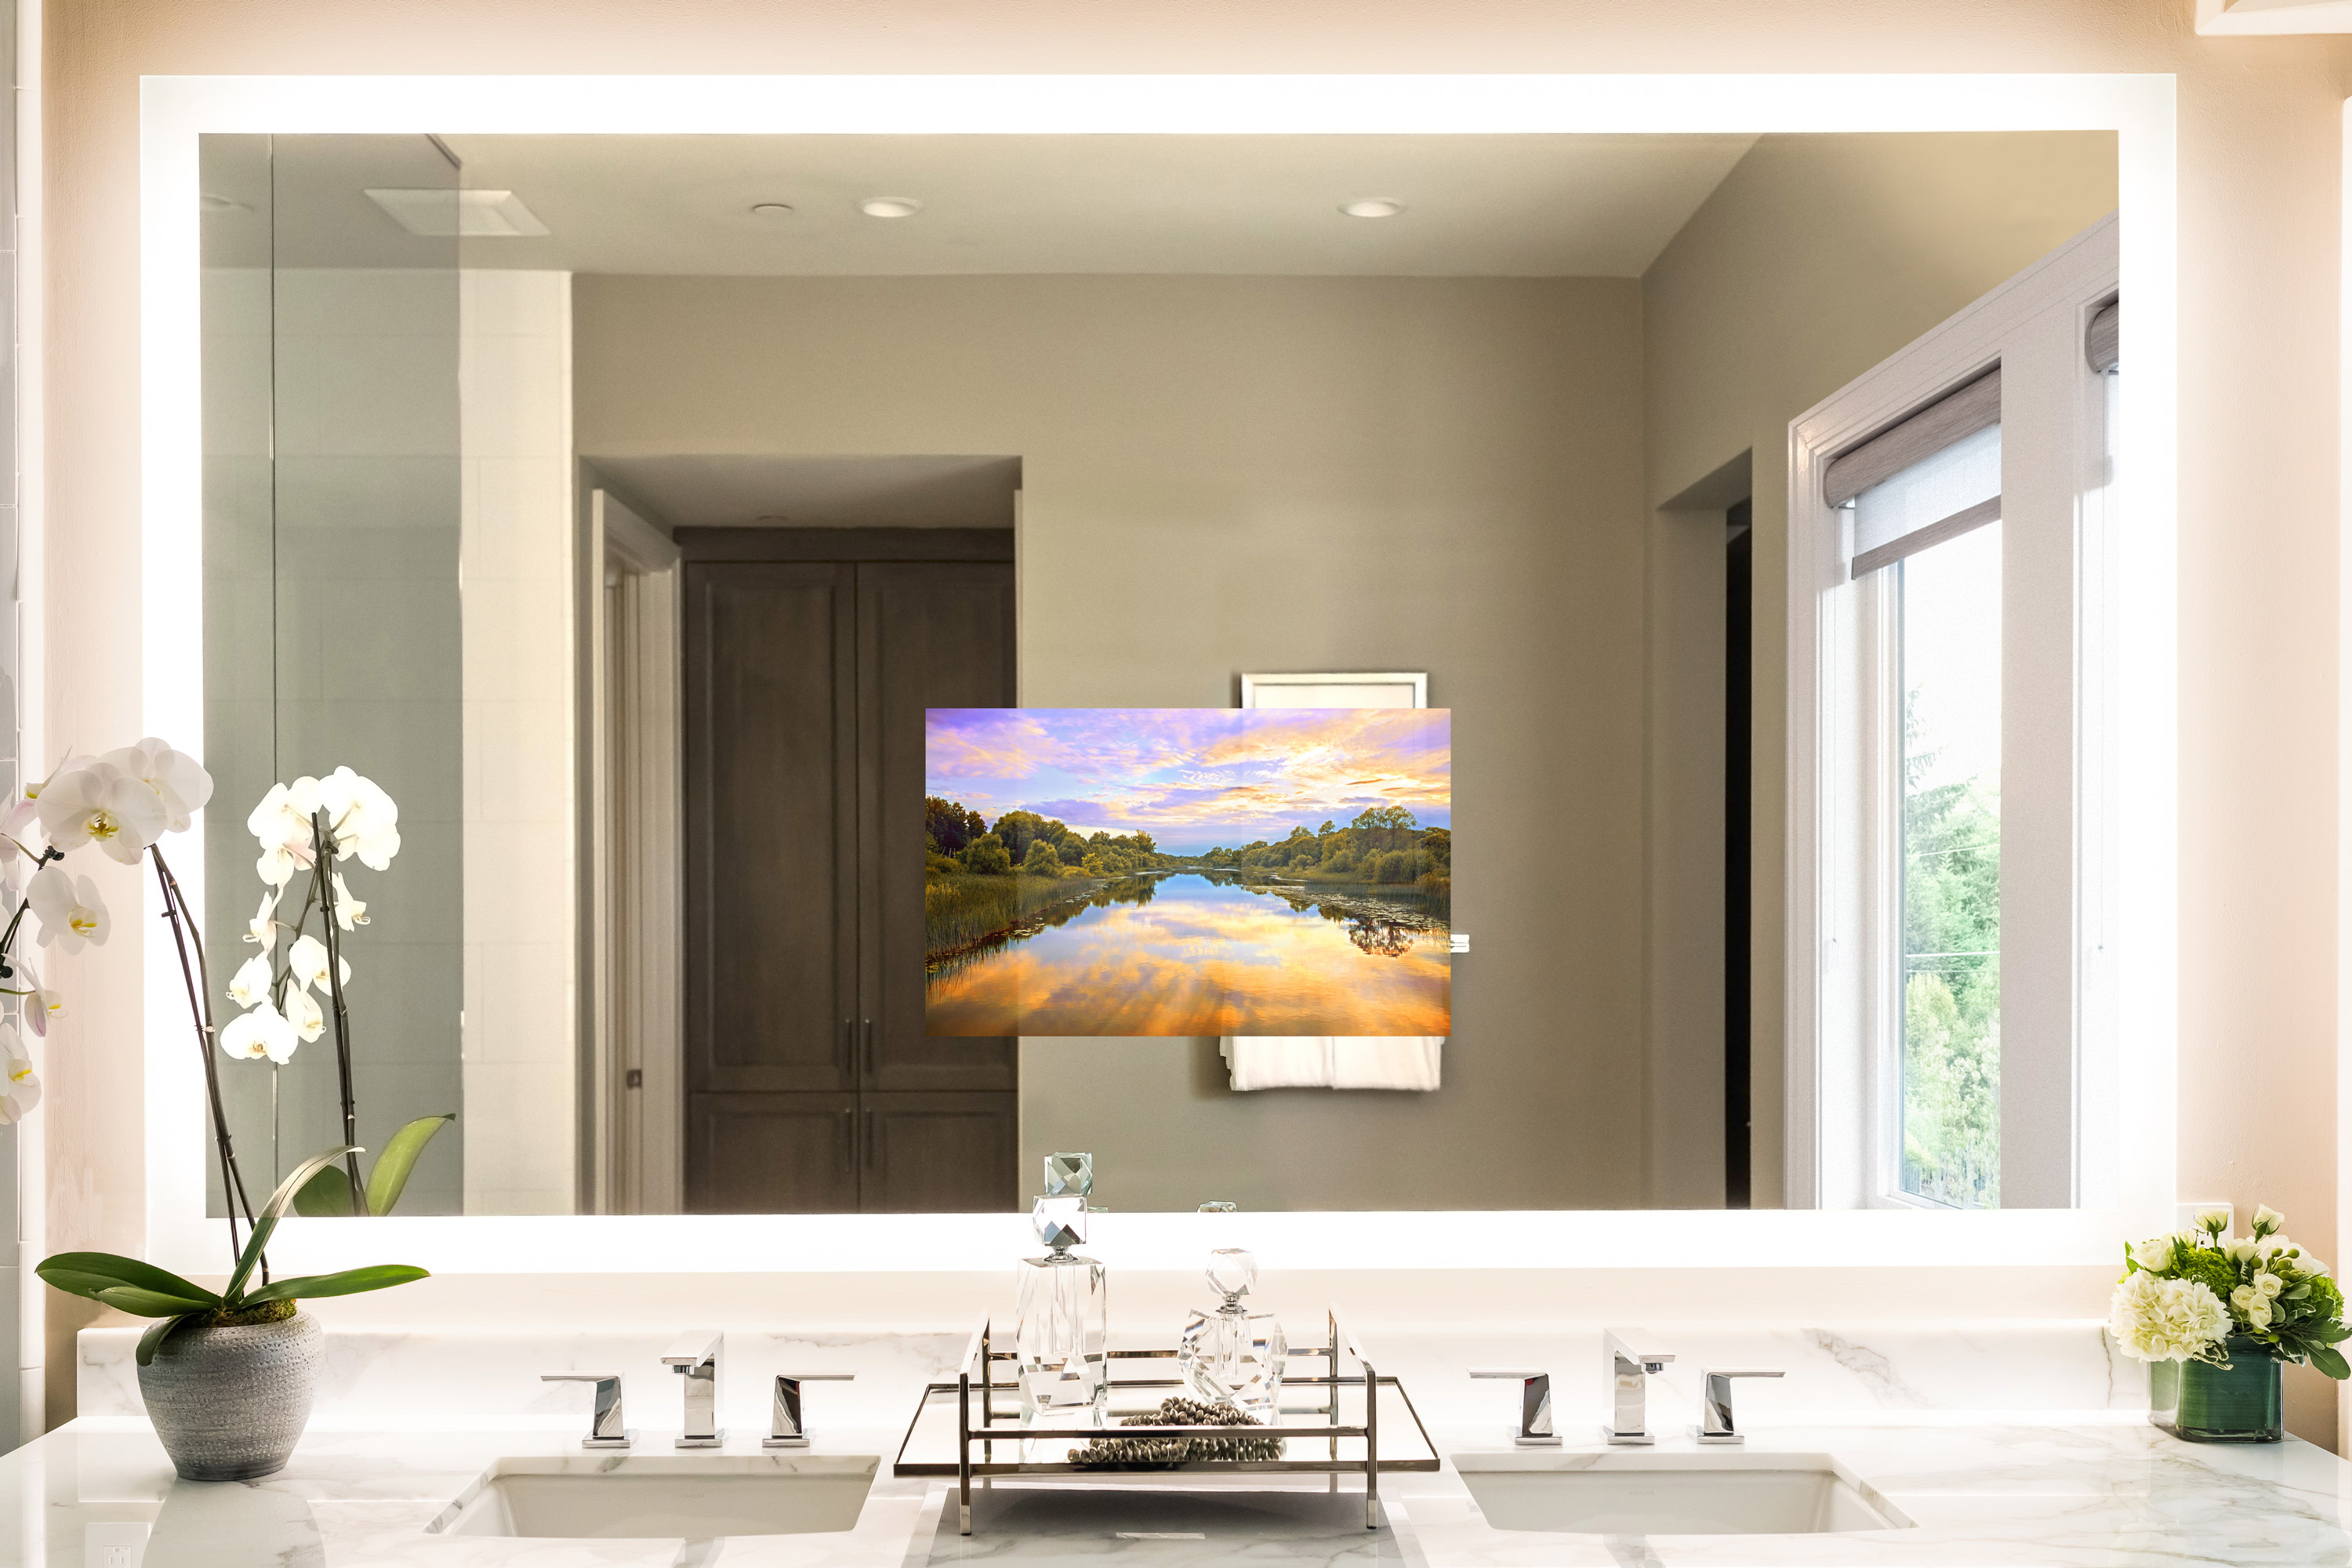 Seura's Vanishing Vanity TV mirrors can have lights added to them like the Forte configuration shown here for an elegant task lighting solution.